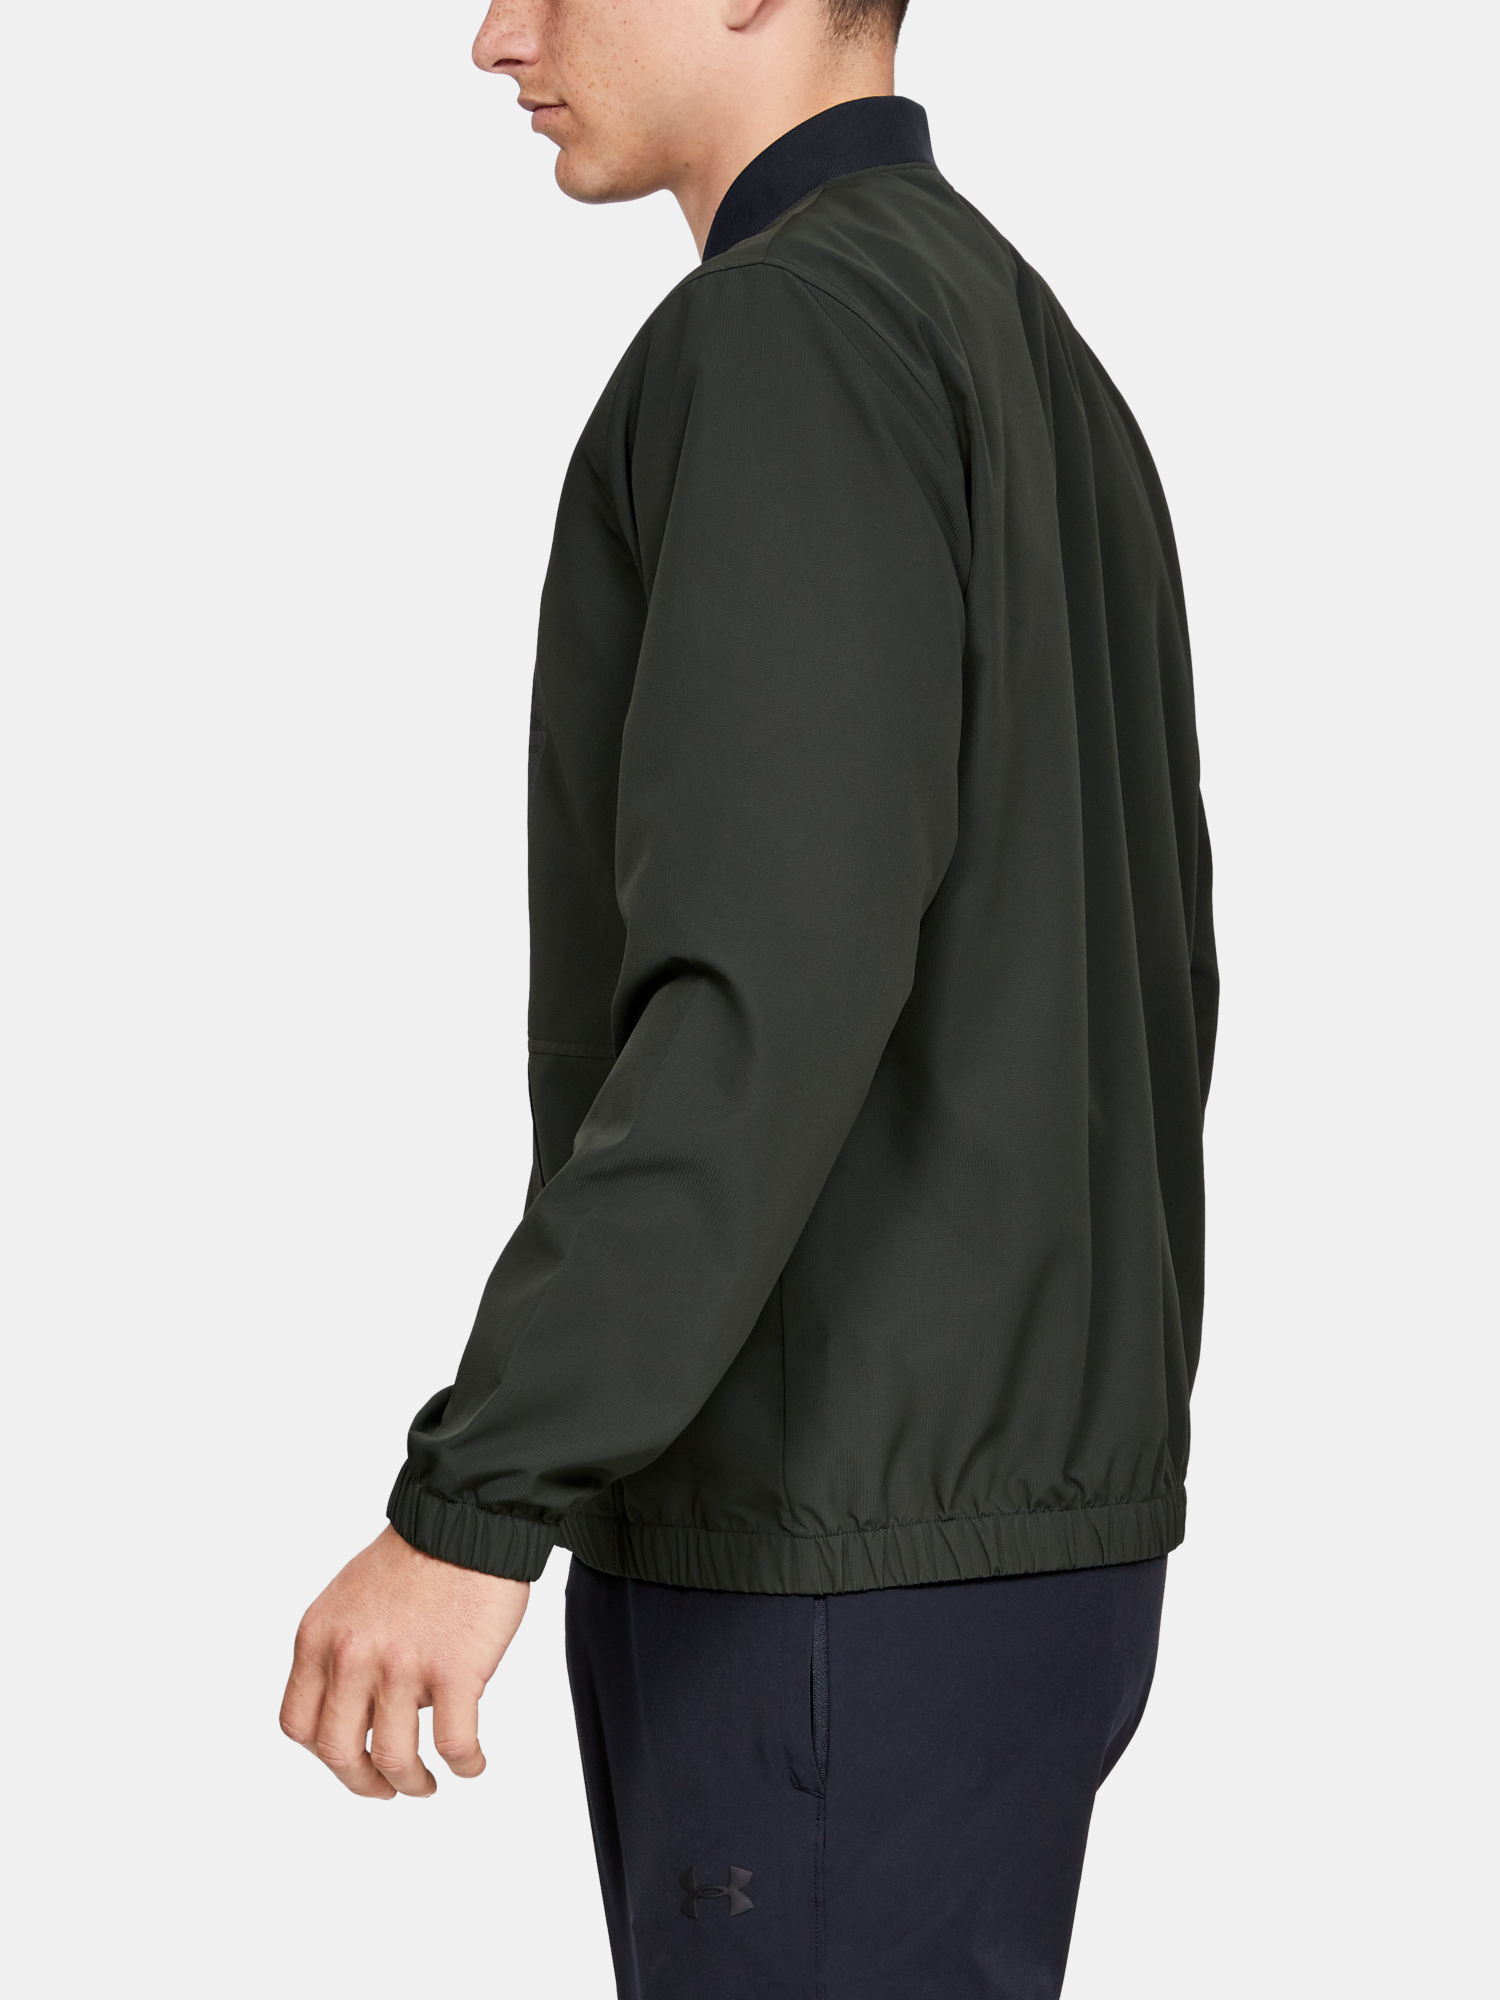 Bunda Under Armour Unstoppable Essential Bomber-Grn (5)